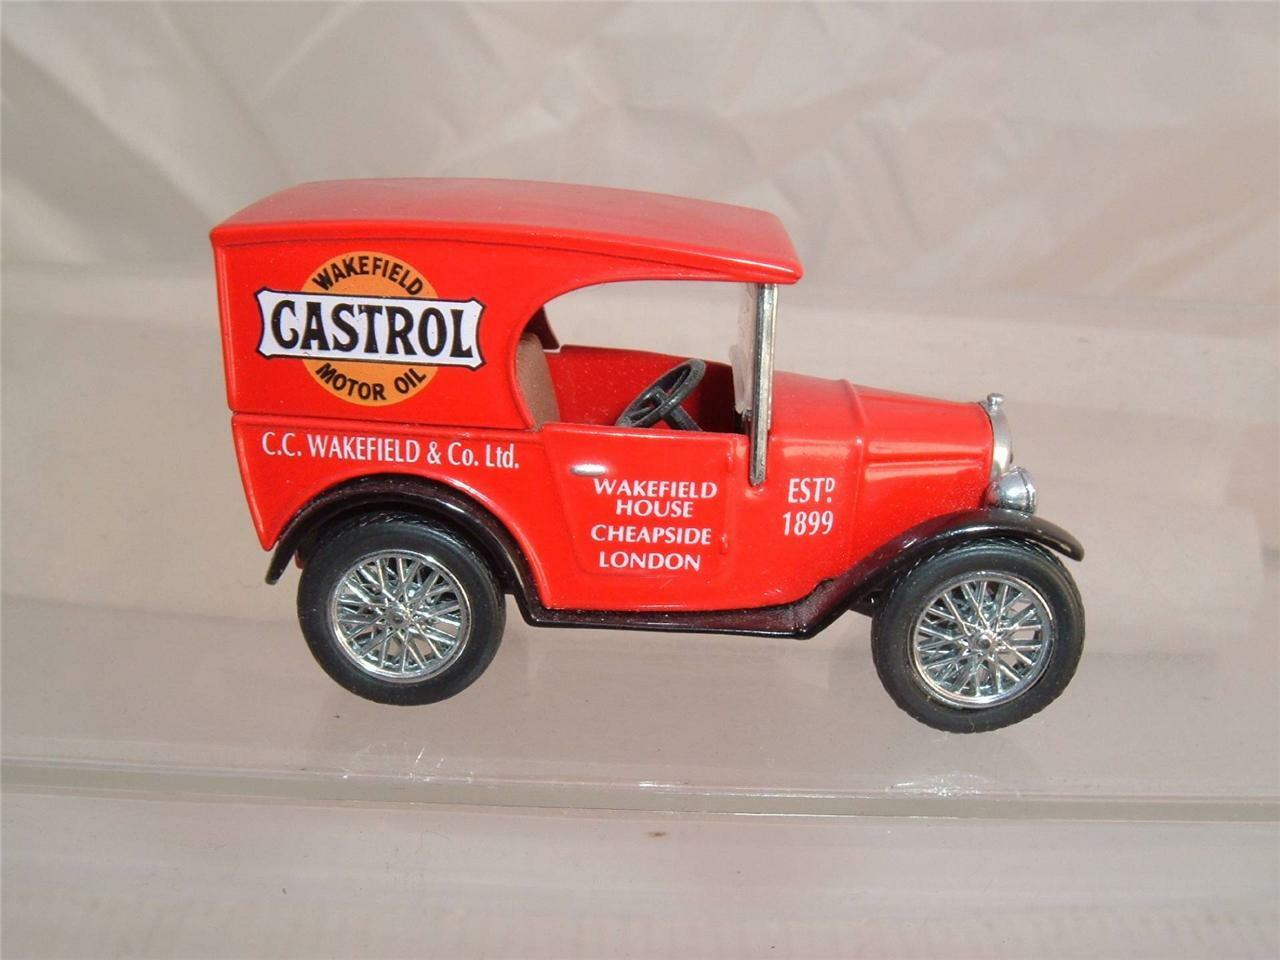 LIMITED EDITION AUSTIN SEVEN WAKEFIELD CASTROL MOTOR OIL CHEAPSIDE LONDON NO BOX